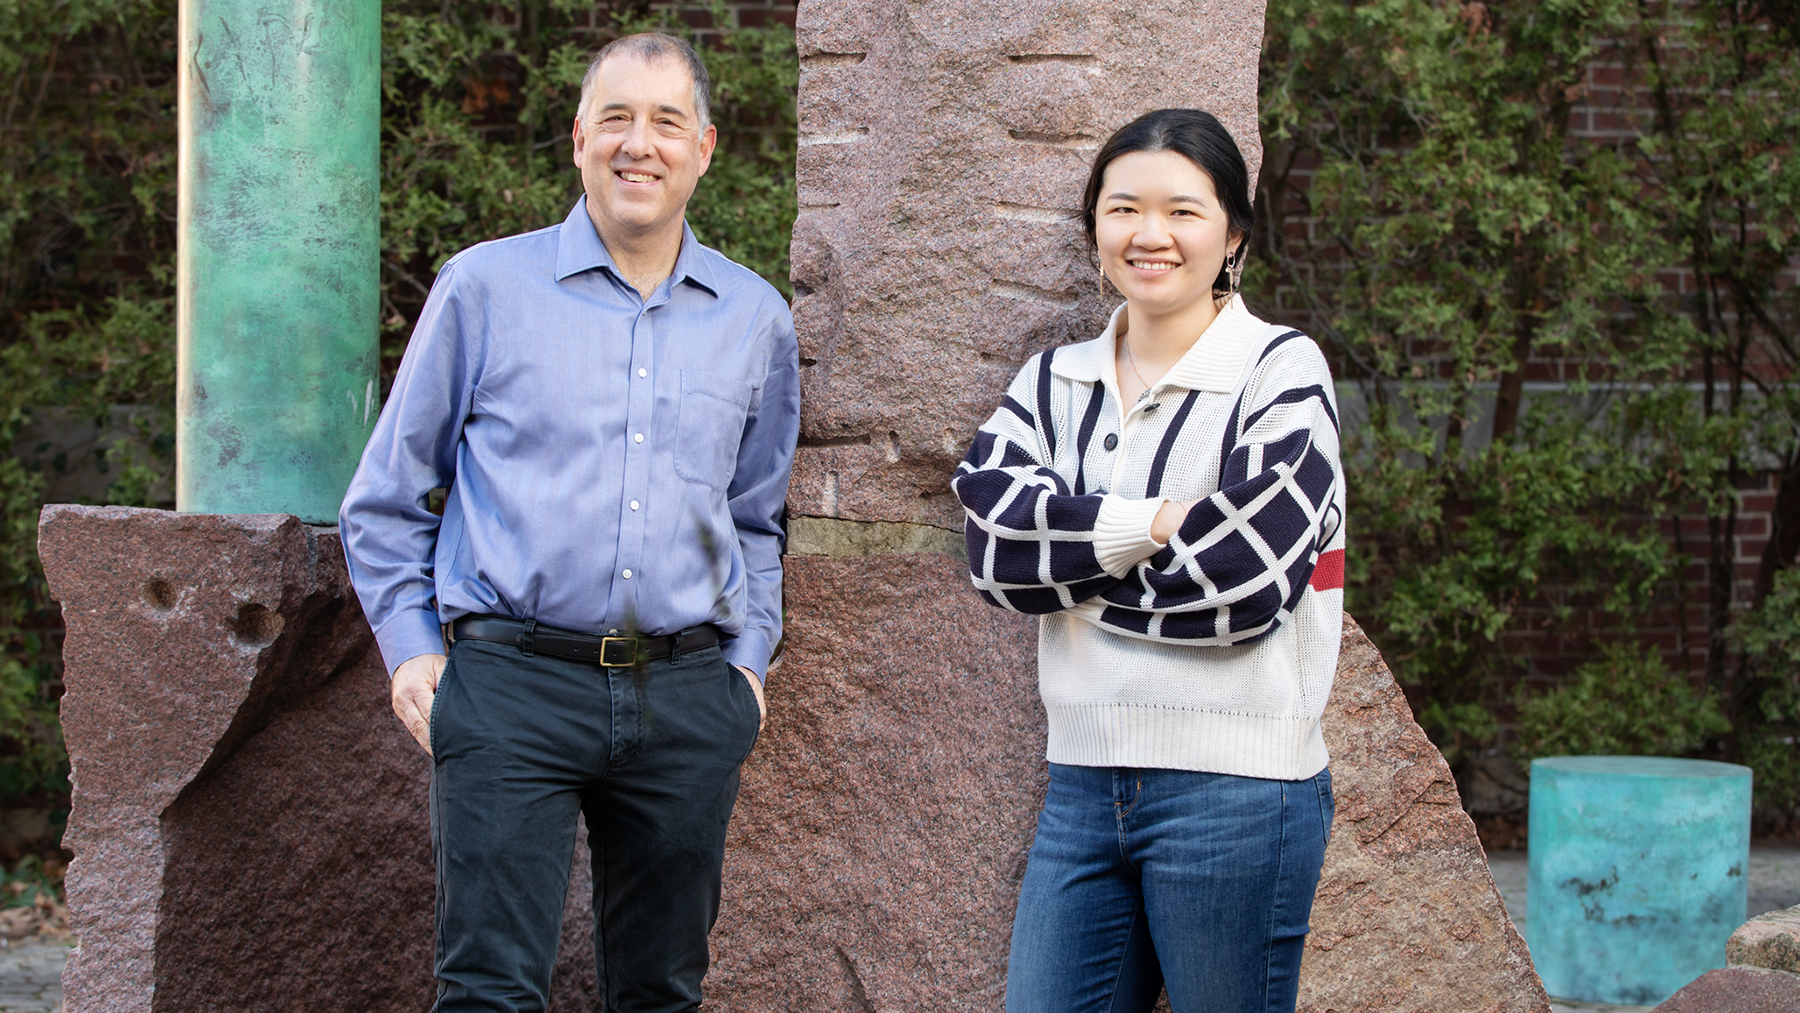 Illinois researchers Andrew Gewirth, left, and Stephanie Chen. Photo by L. B. Stauffer